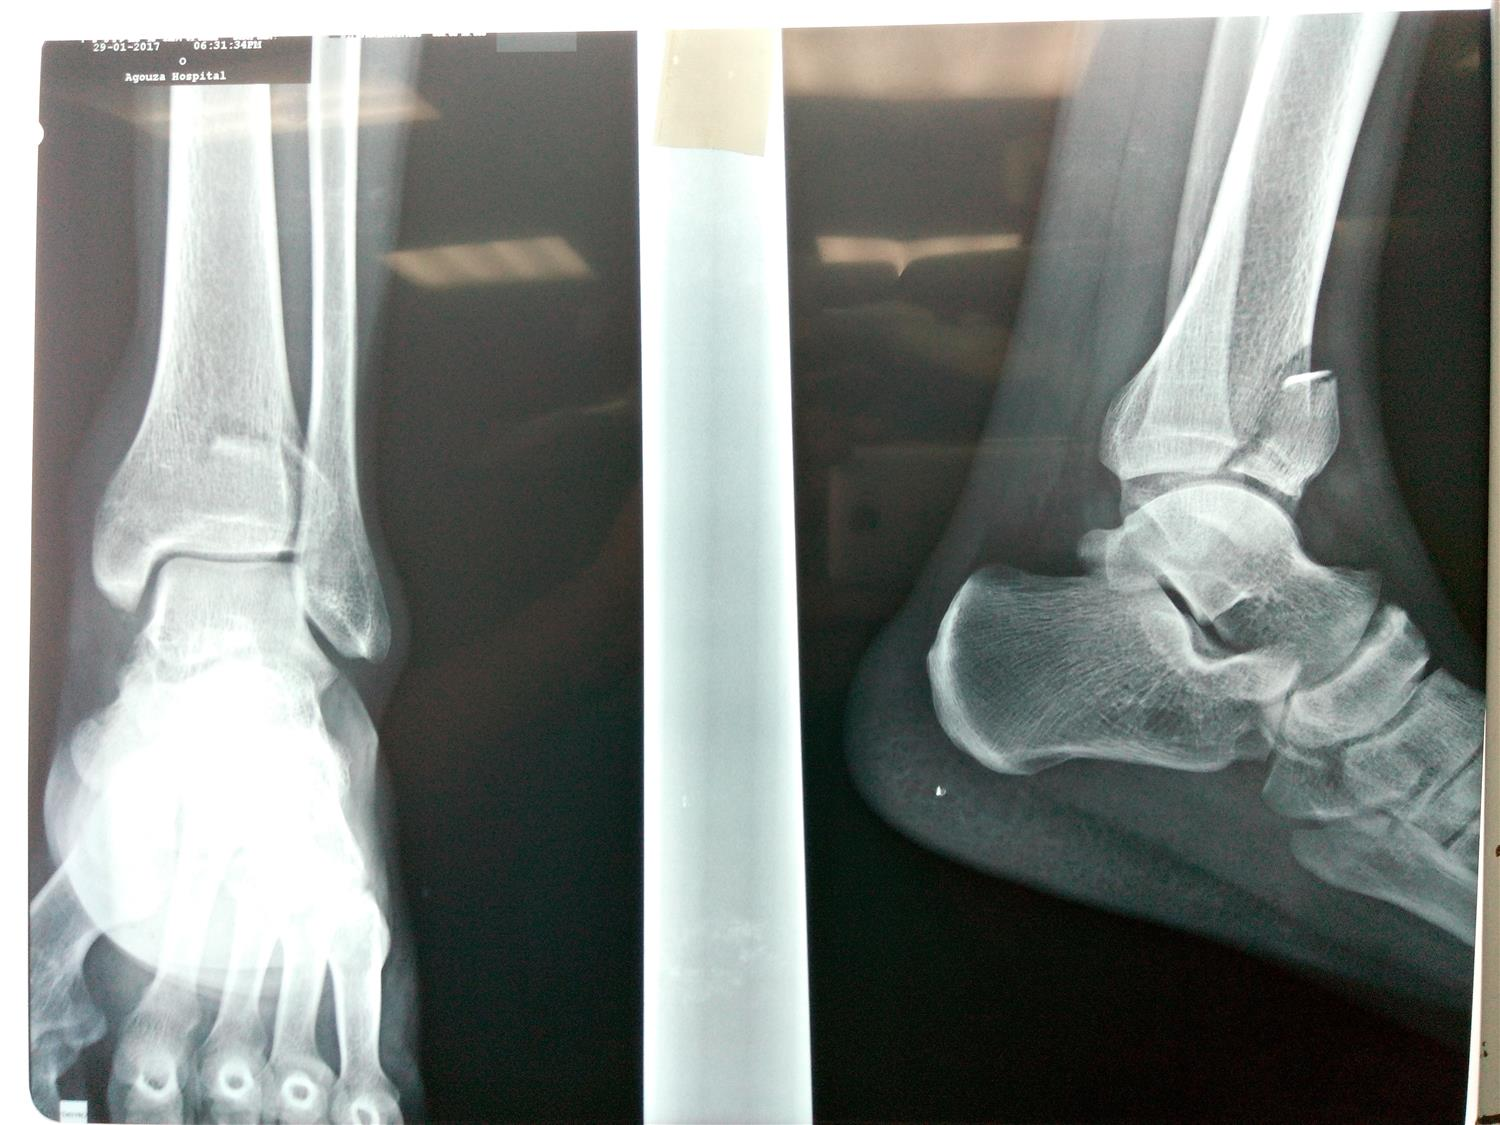 AP and Lateral views of left ankle